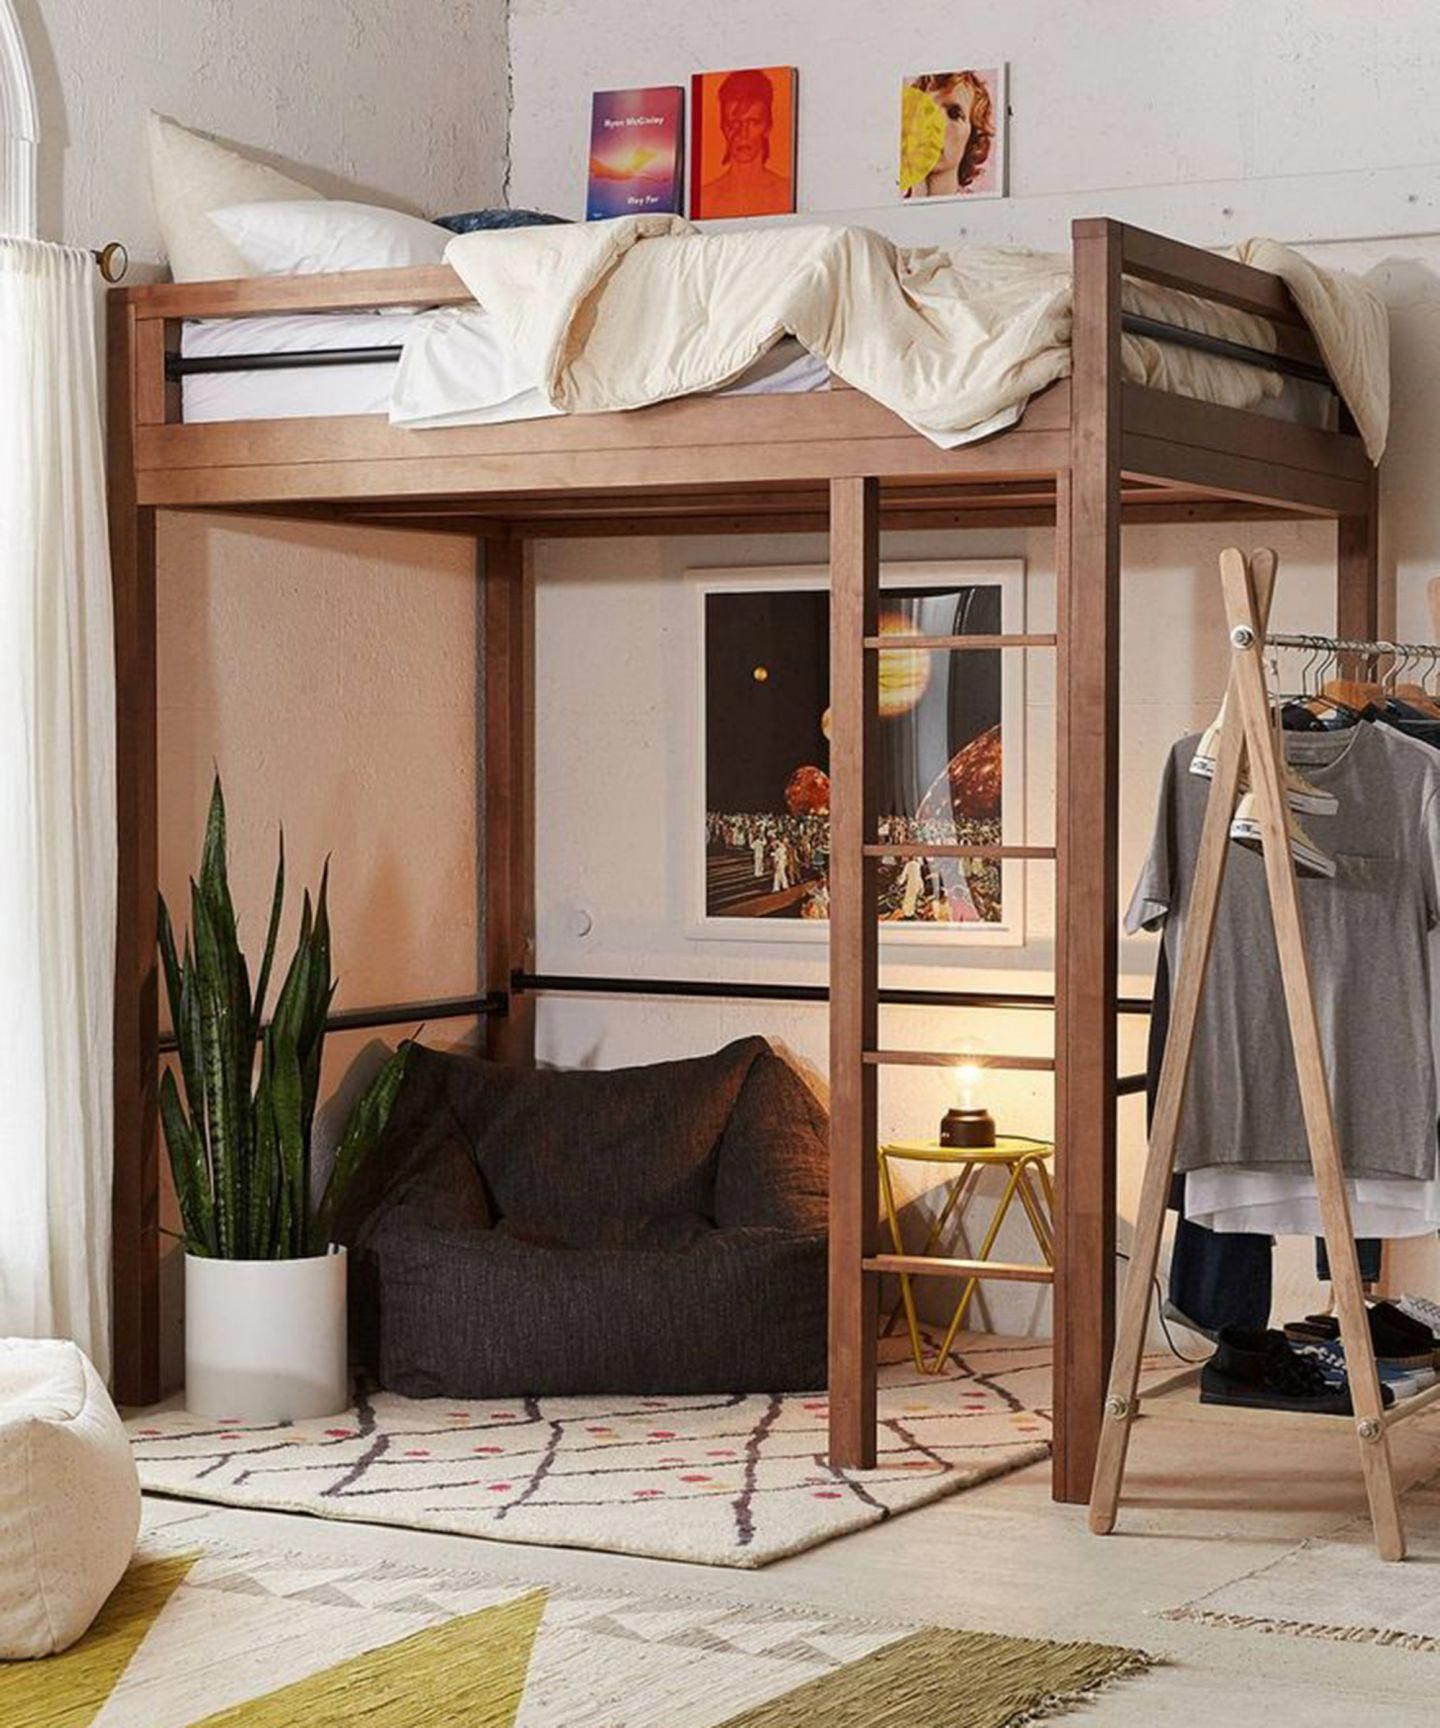 Best Lofted Beds For Adults - Queen Size Loft Bed Ideas #kidsbedroom